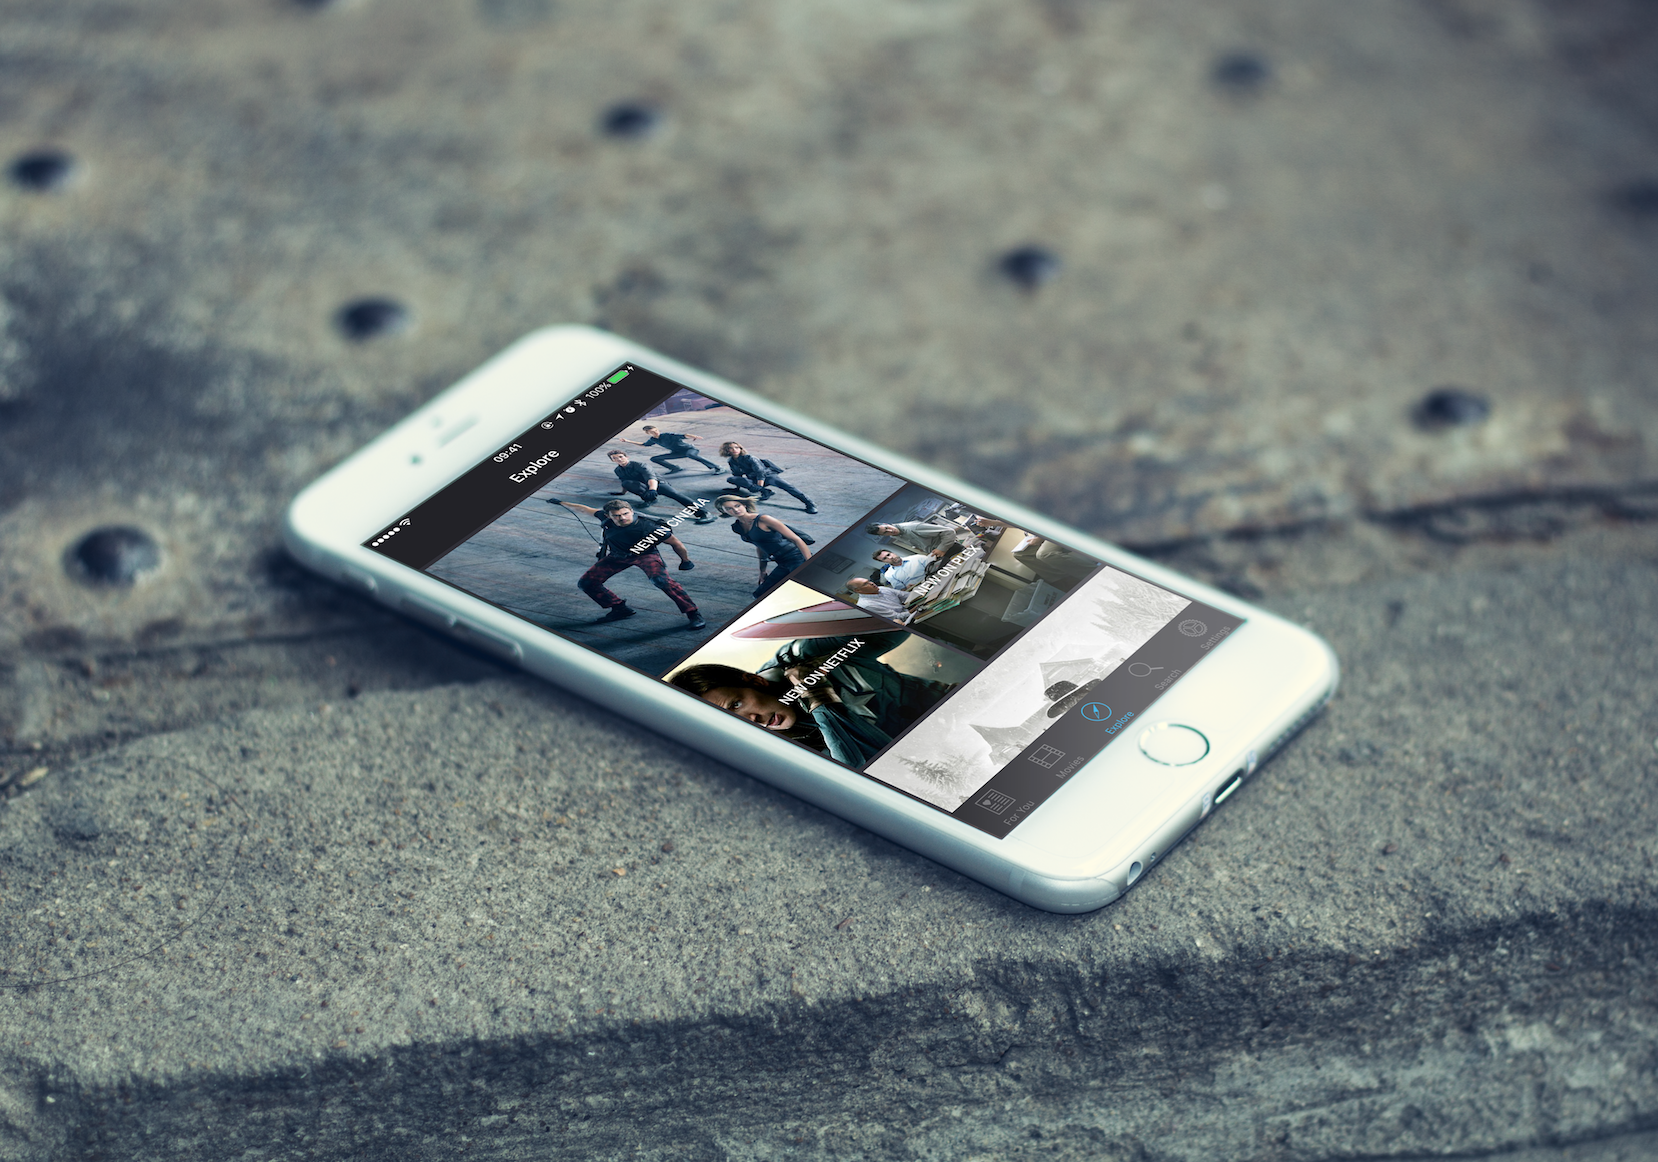 AlertFilm - Your Movie Assistant is now available on the App Store Image